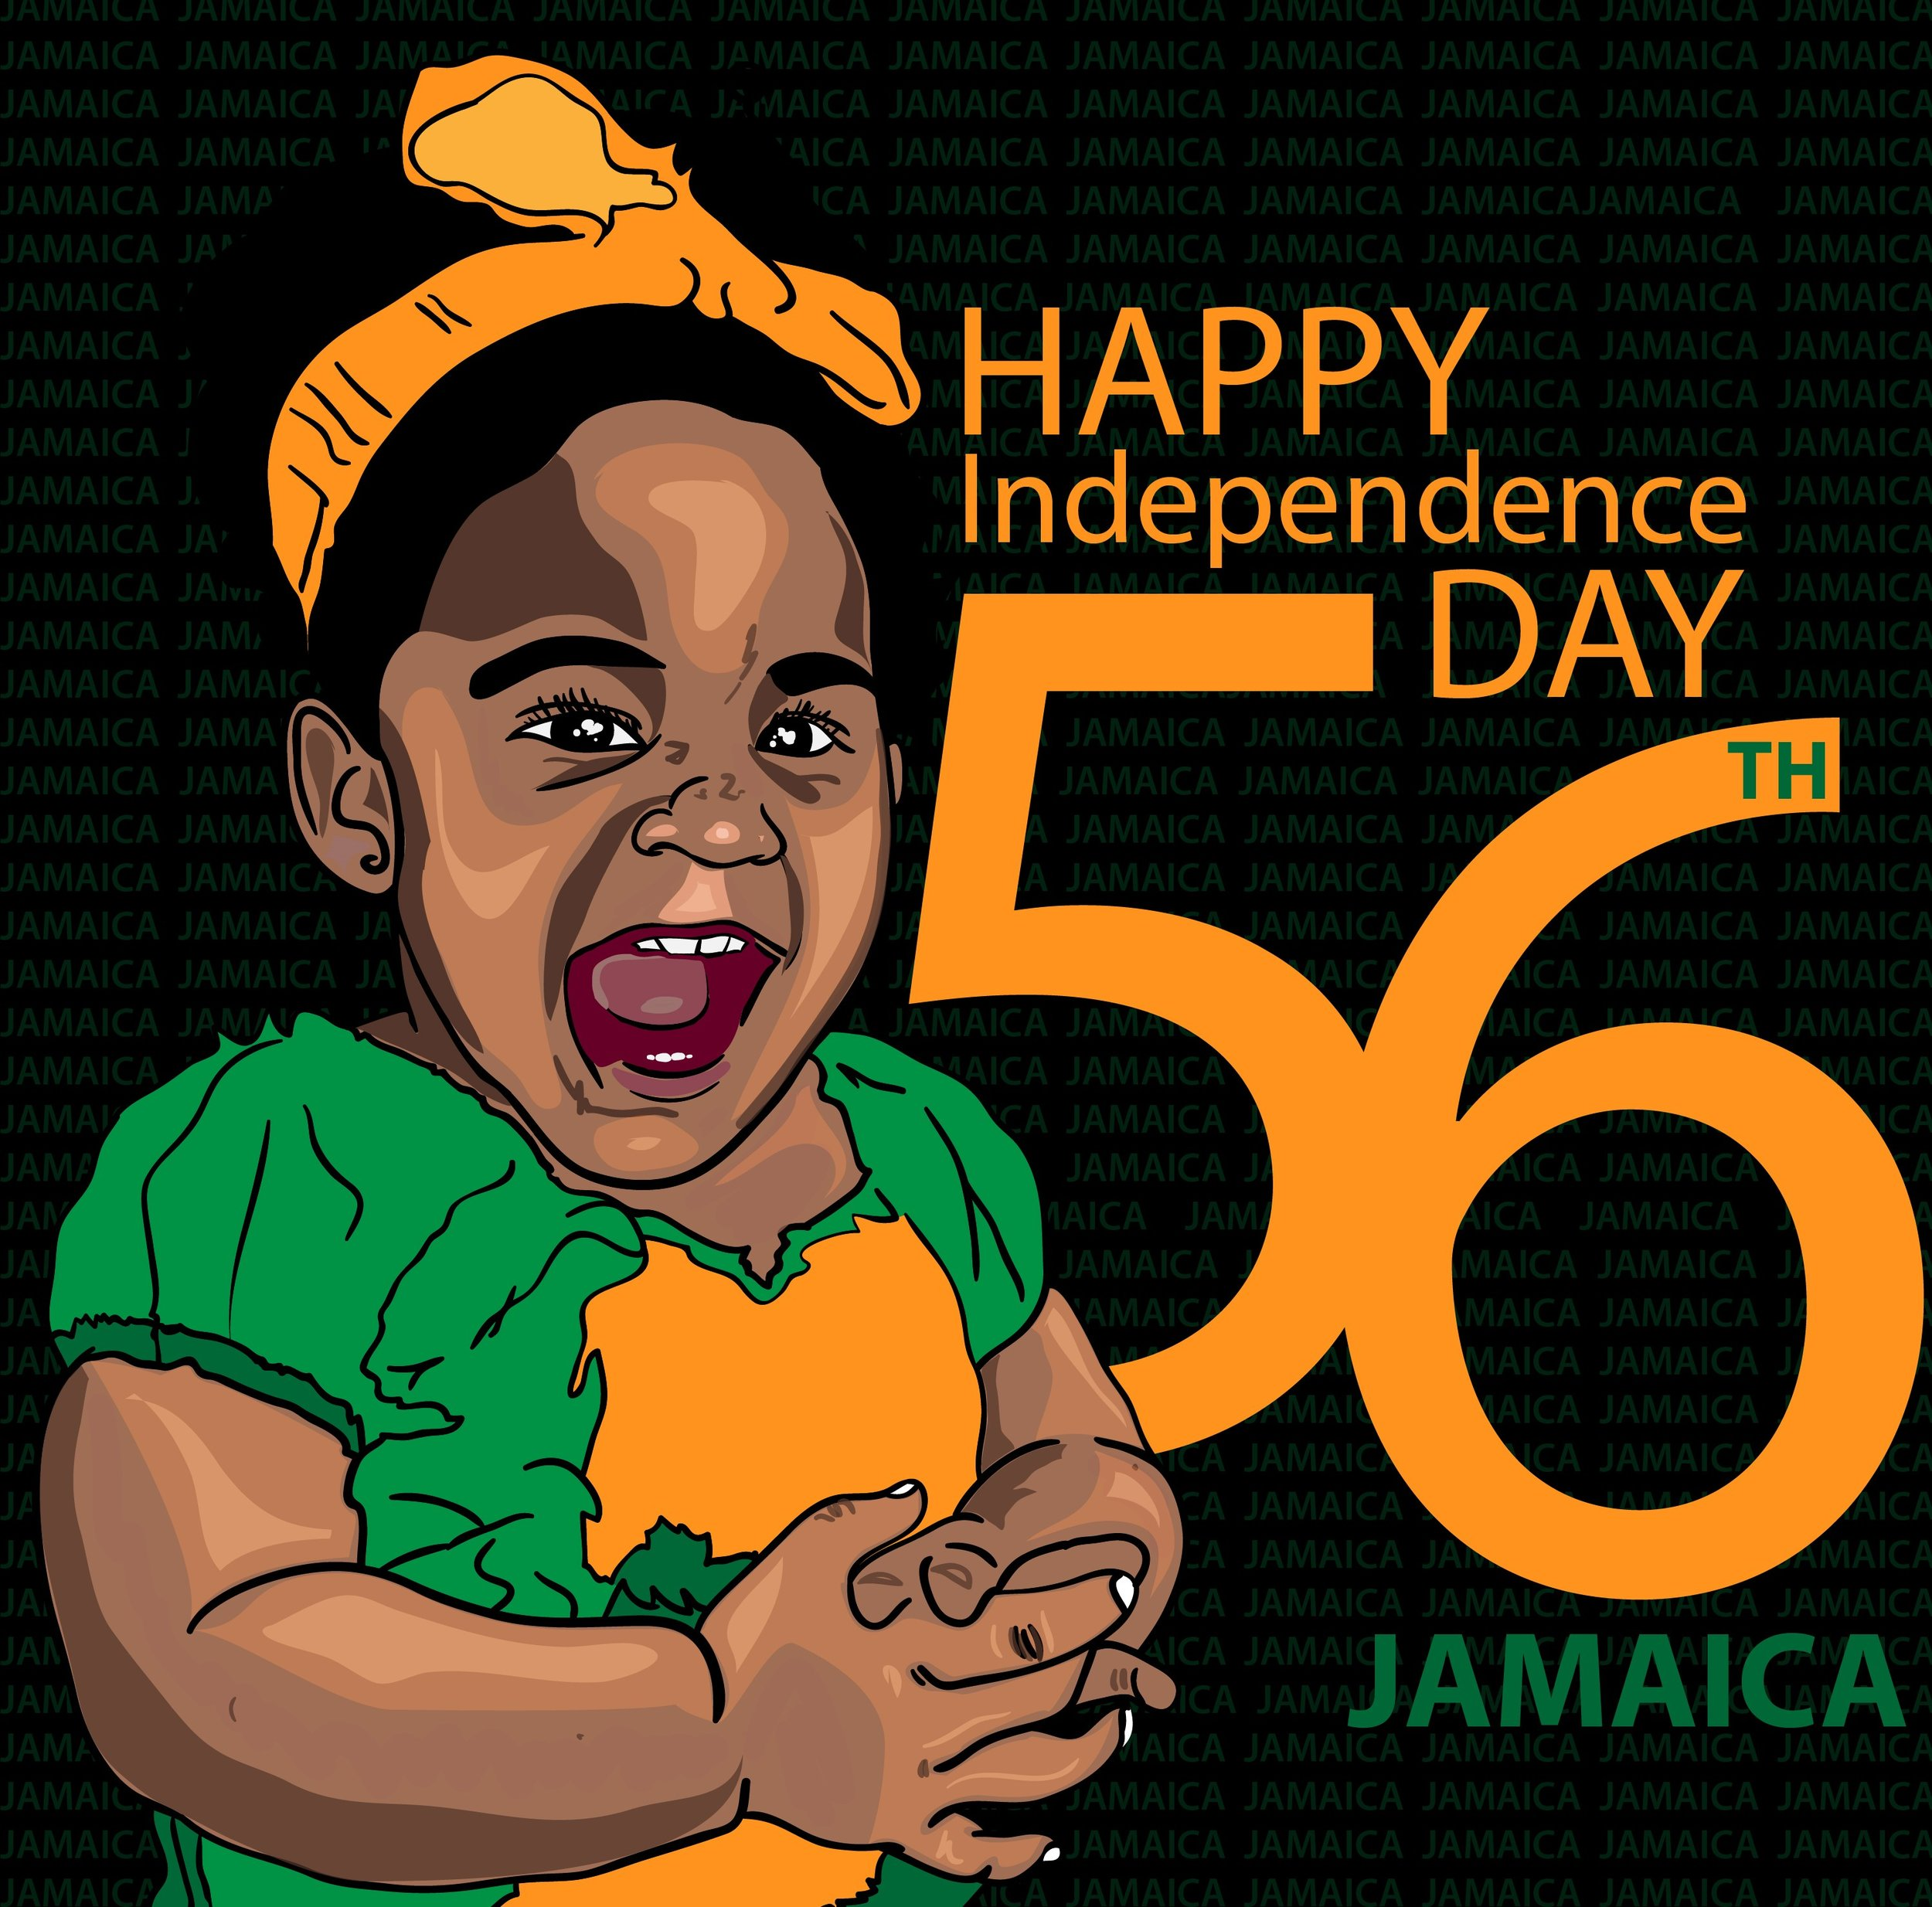 Jamaica 56th Independence